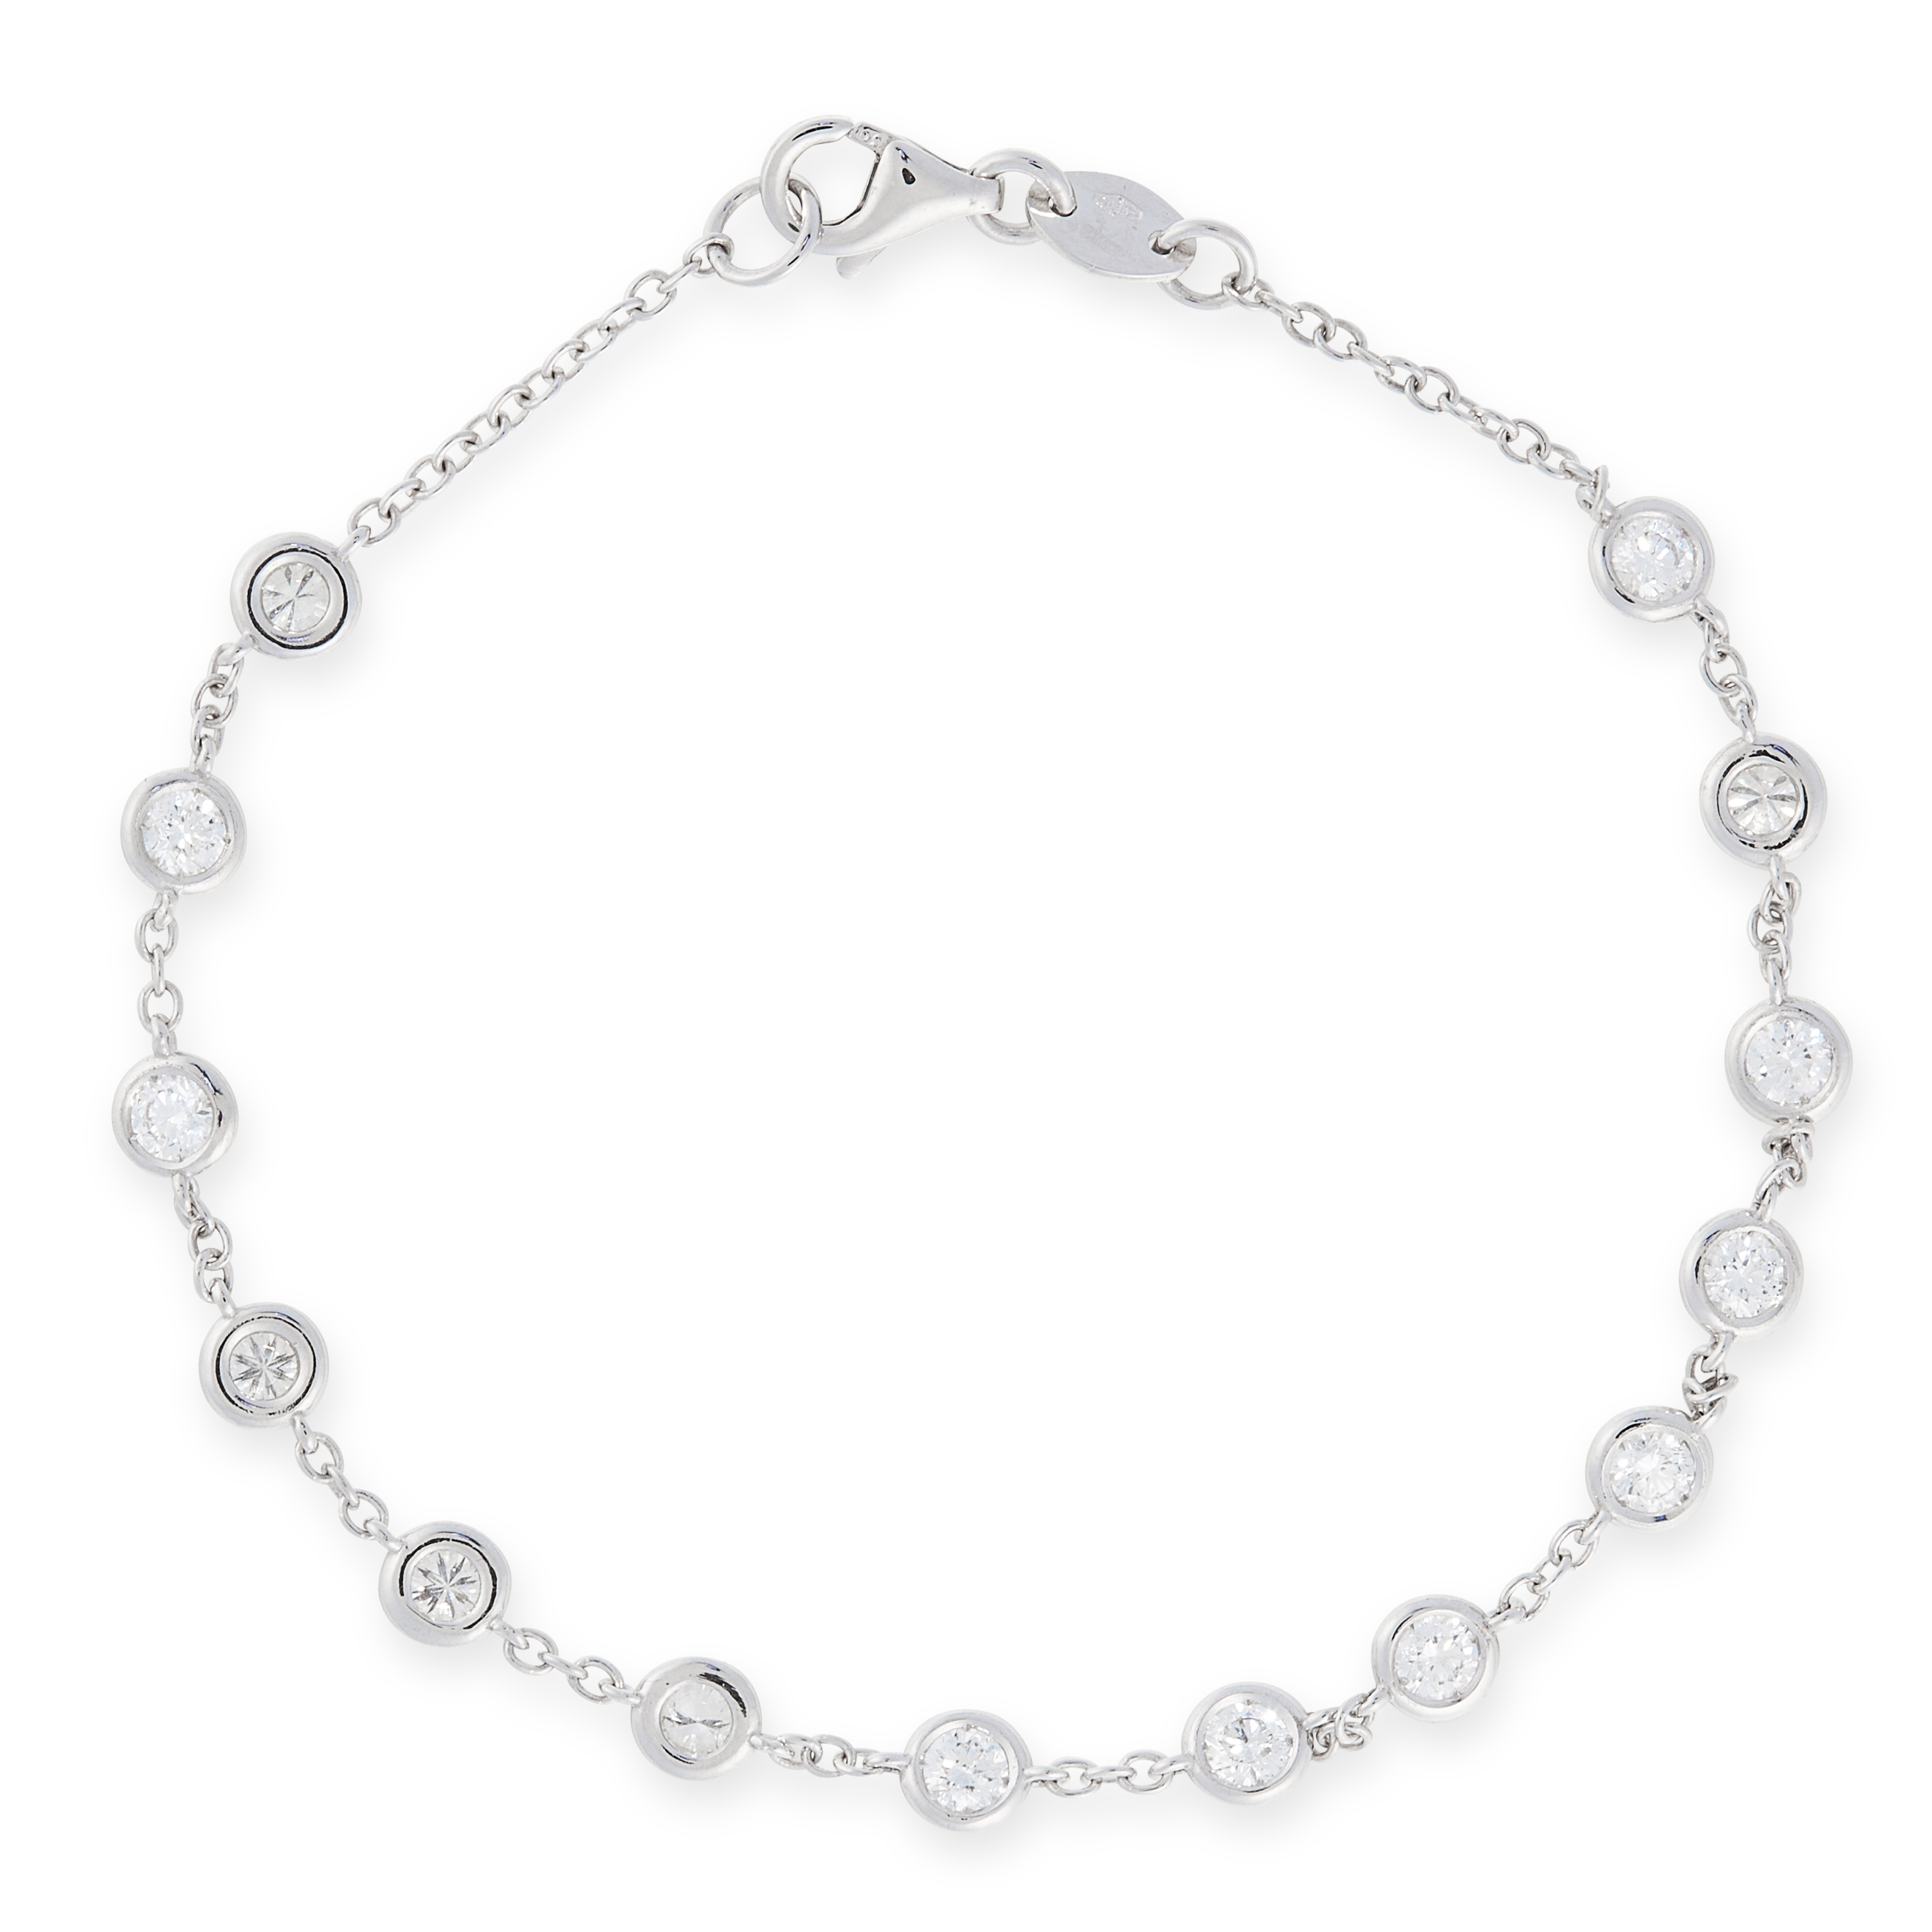 A DIAMOND LINE BRACELET in 18ct white gold, the chain set with fourteen round cut diamonds totalling